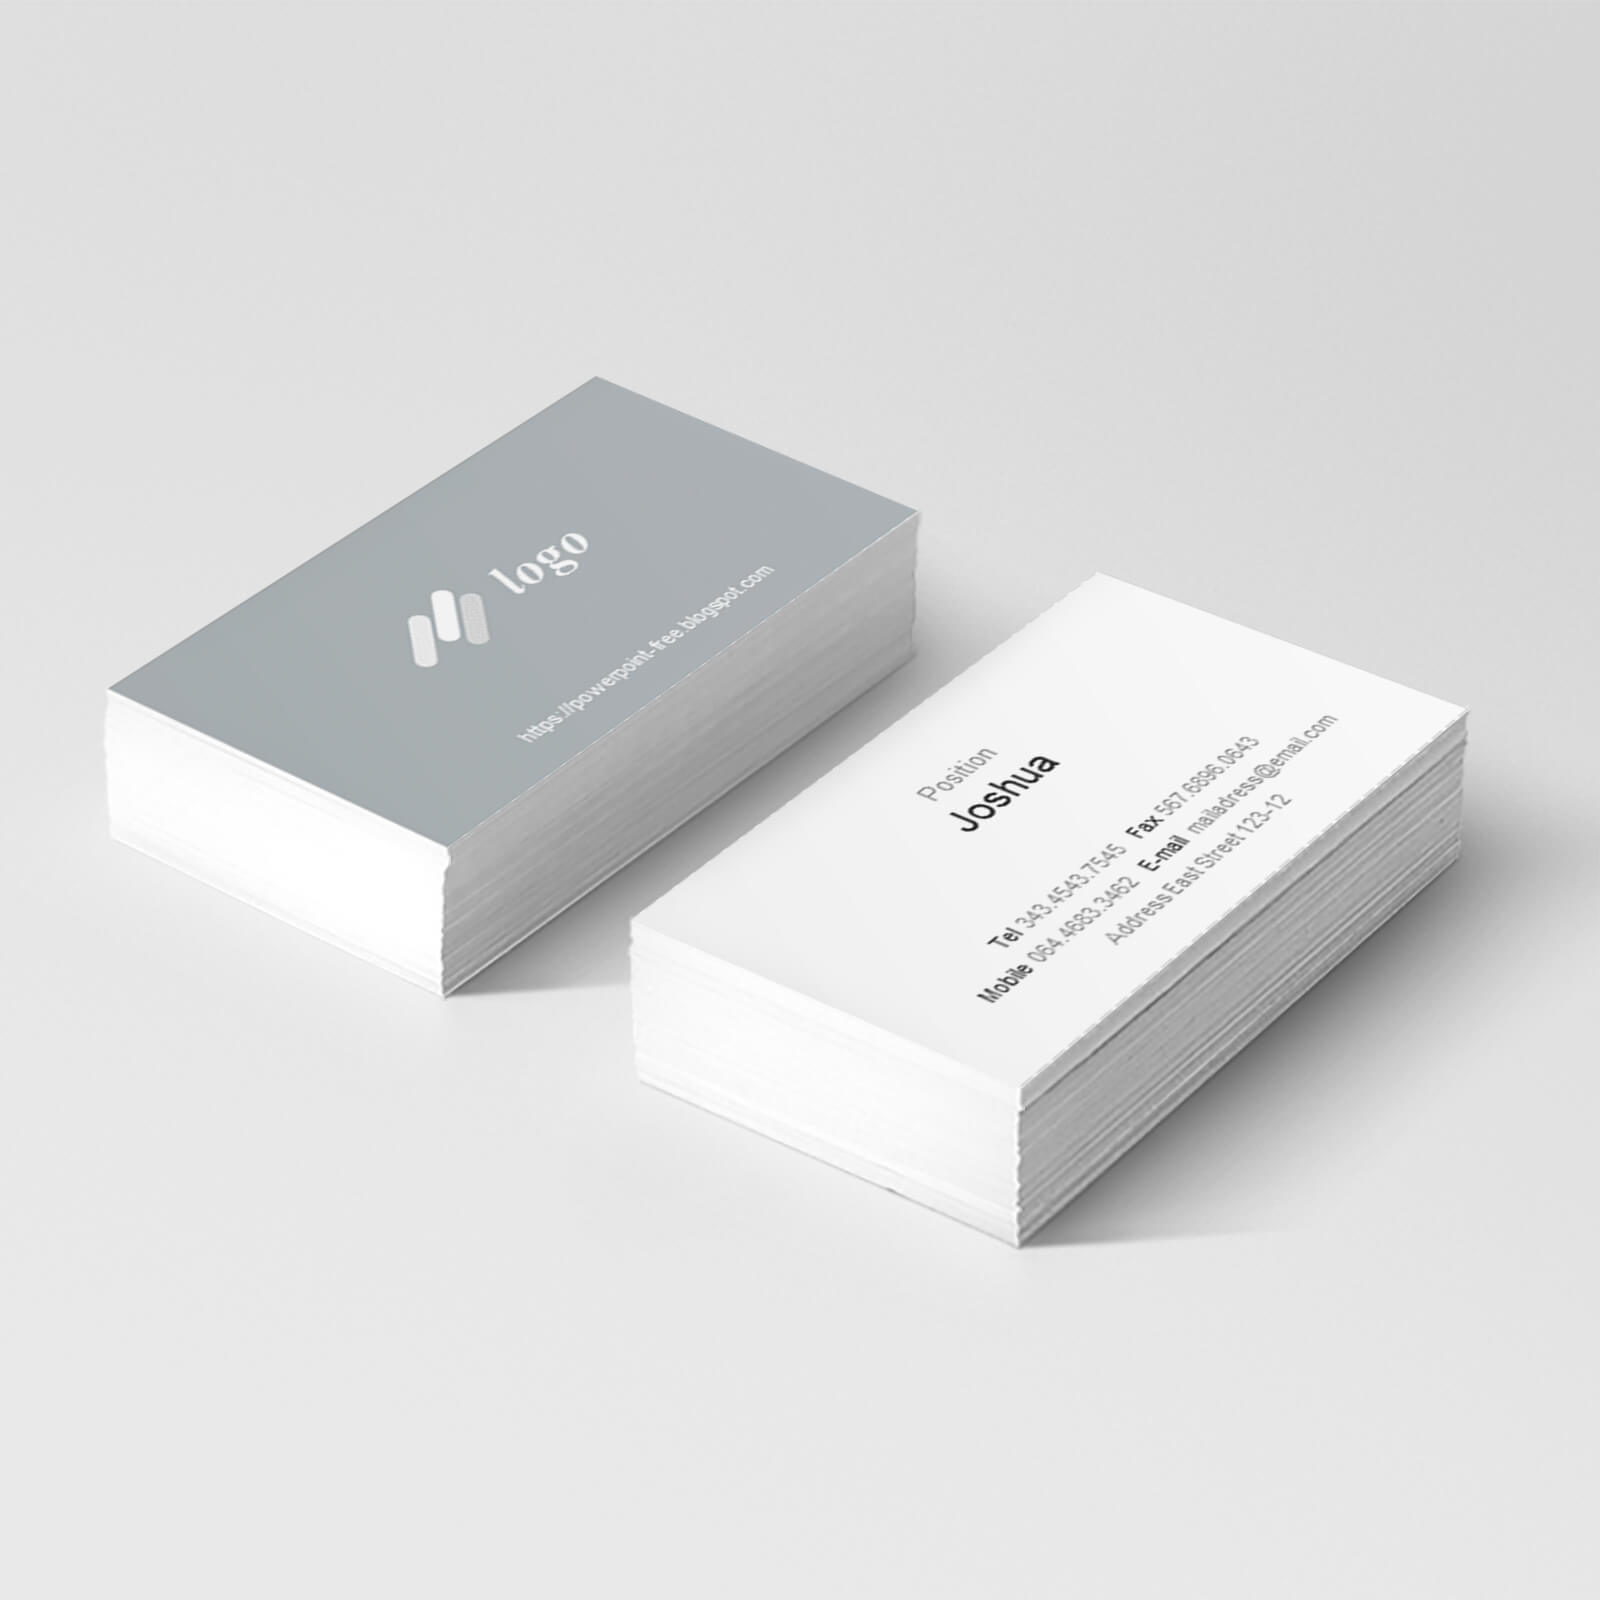 Basic Business Card Powerpoint Templates - Powerpoint Free With Business Card Powerpoint Templates Free